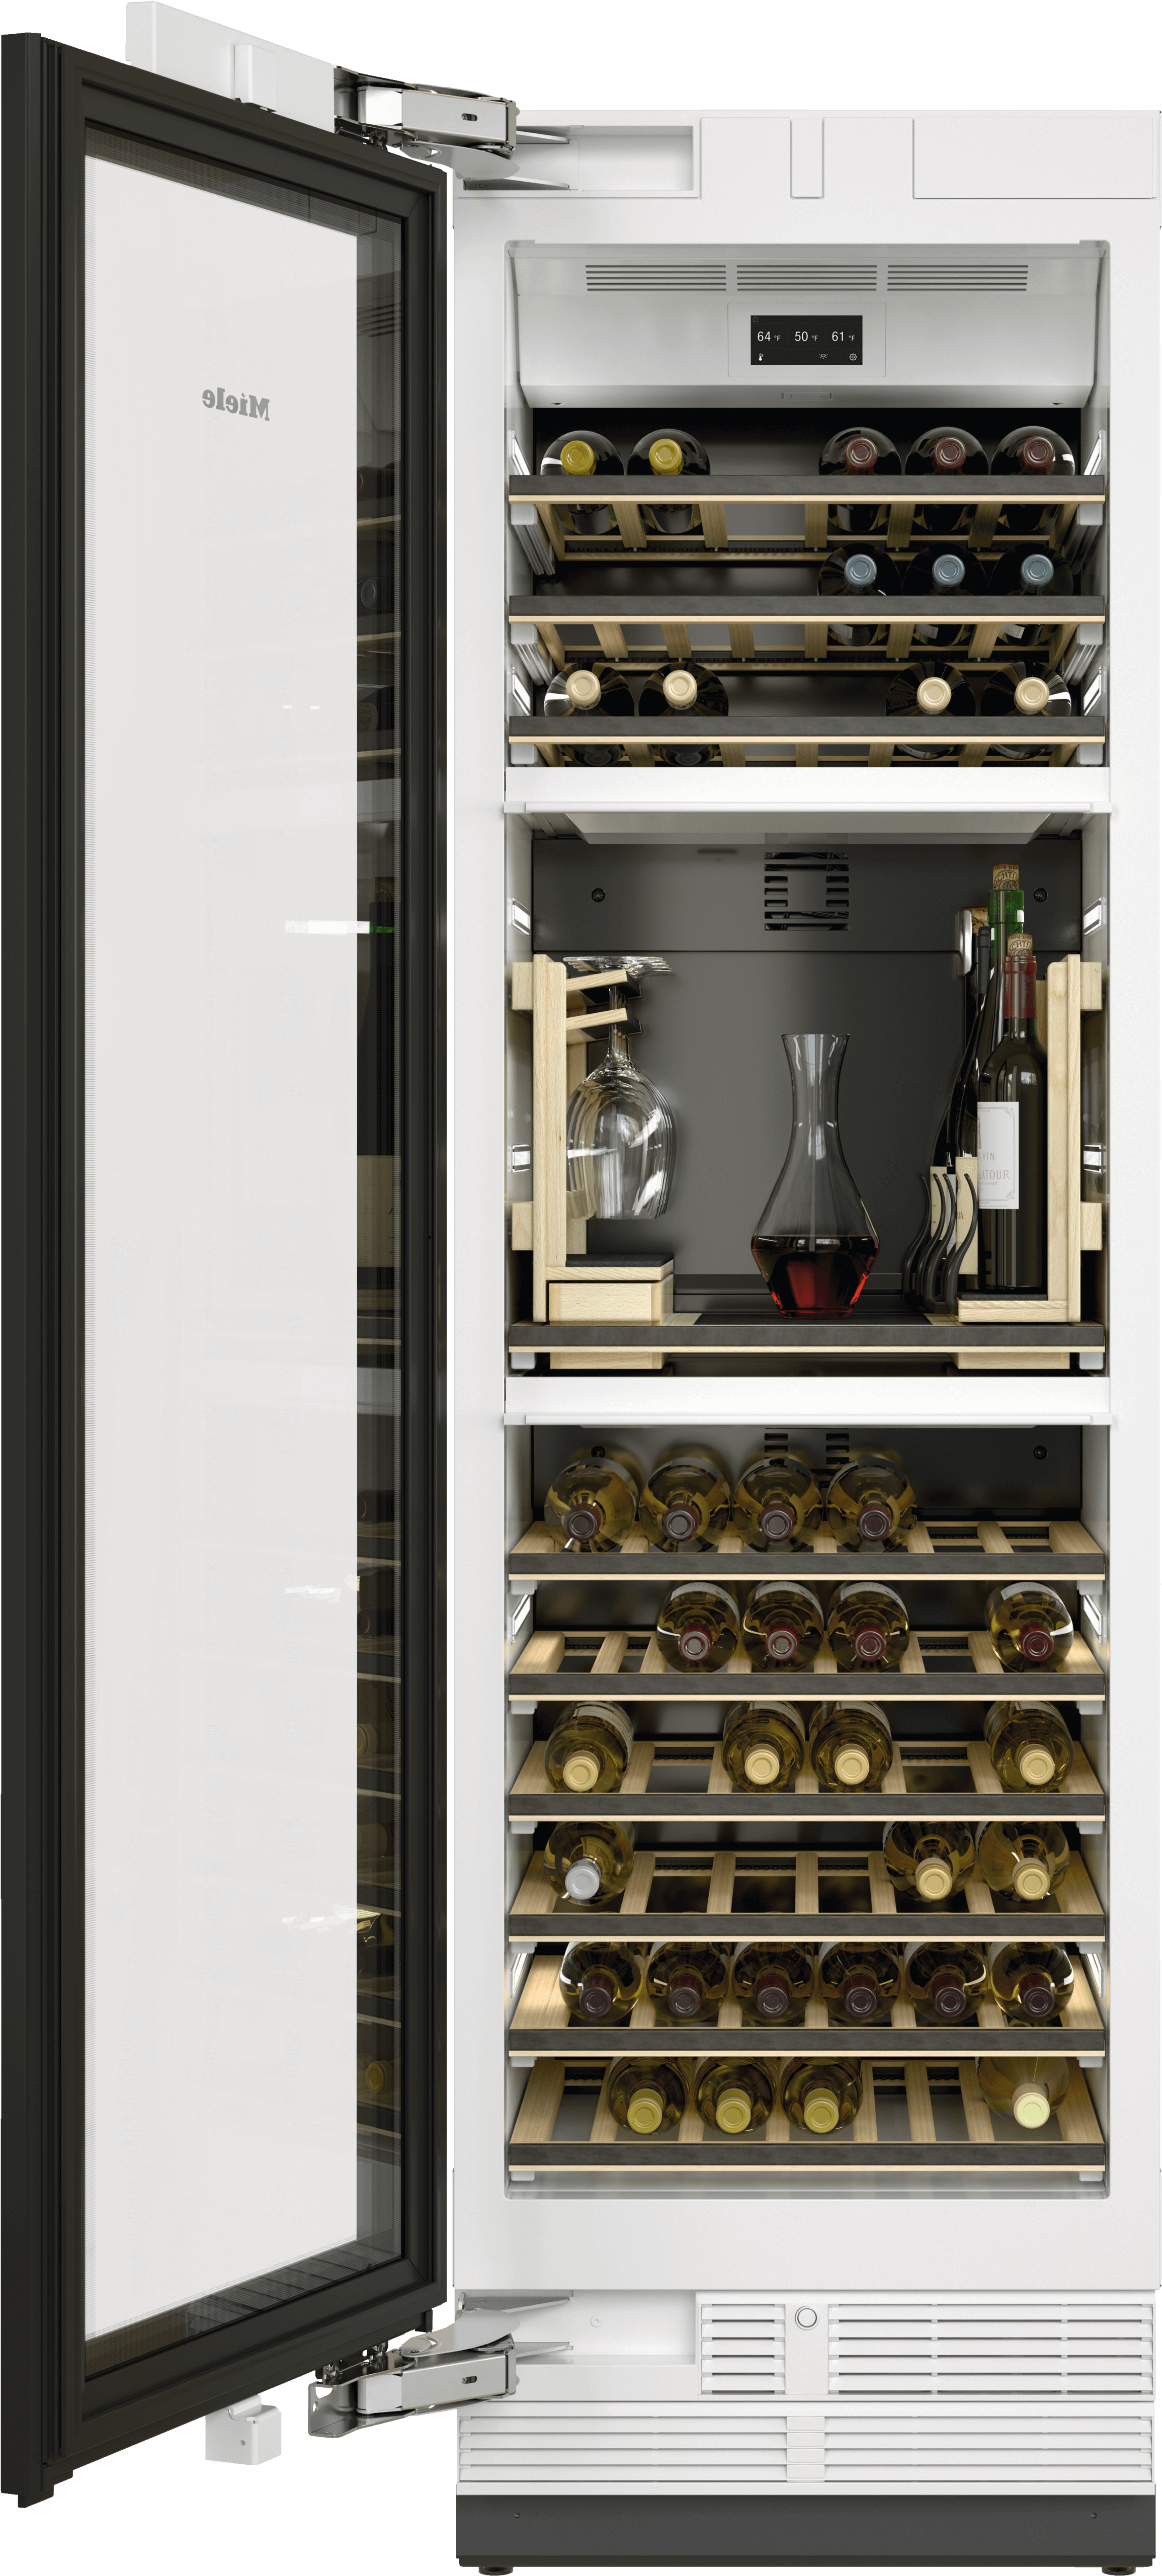 MieleKwt 2672 Vis - Mastercool Wine Conditioning Unit For High-End Design And Technology On A Large Scale.